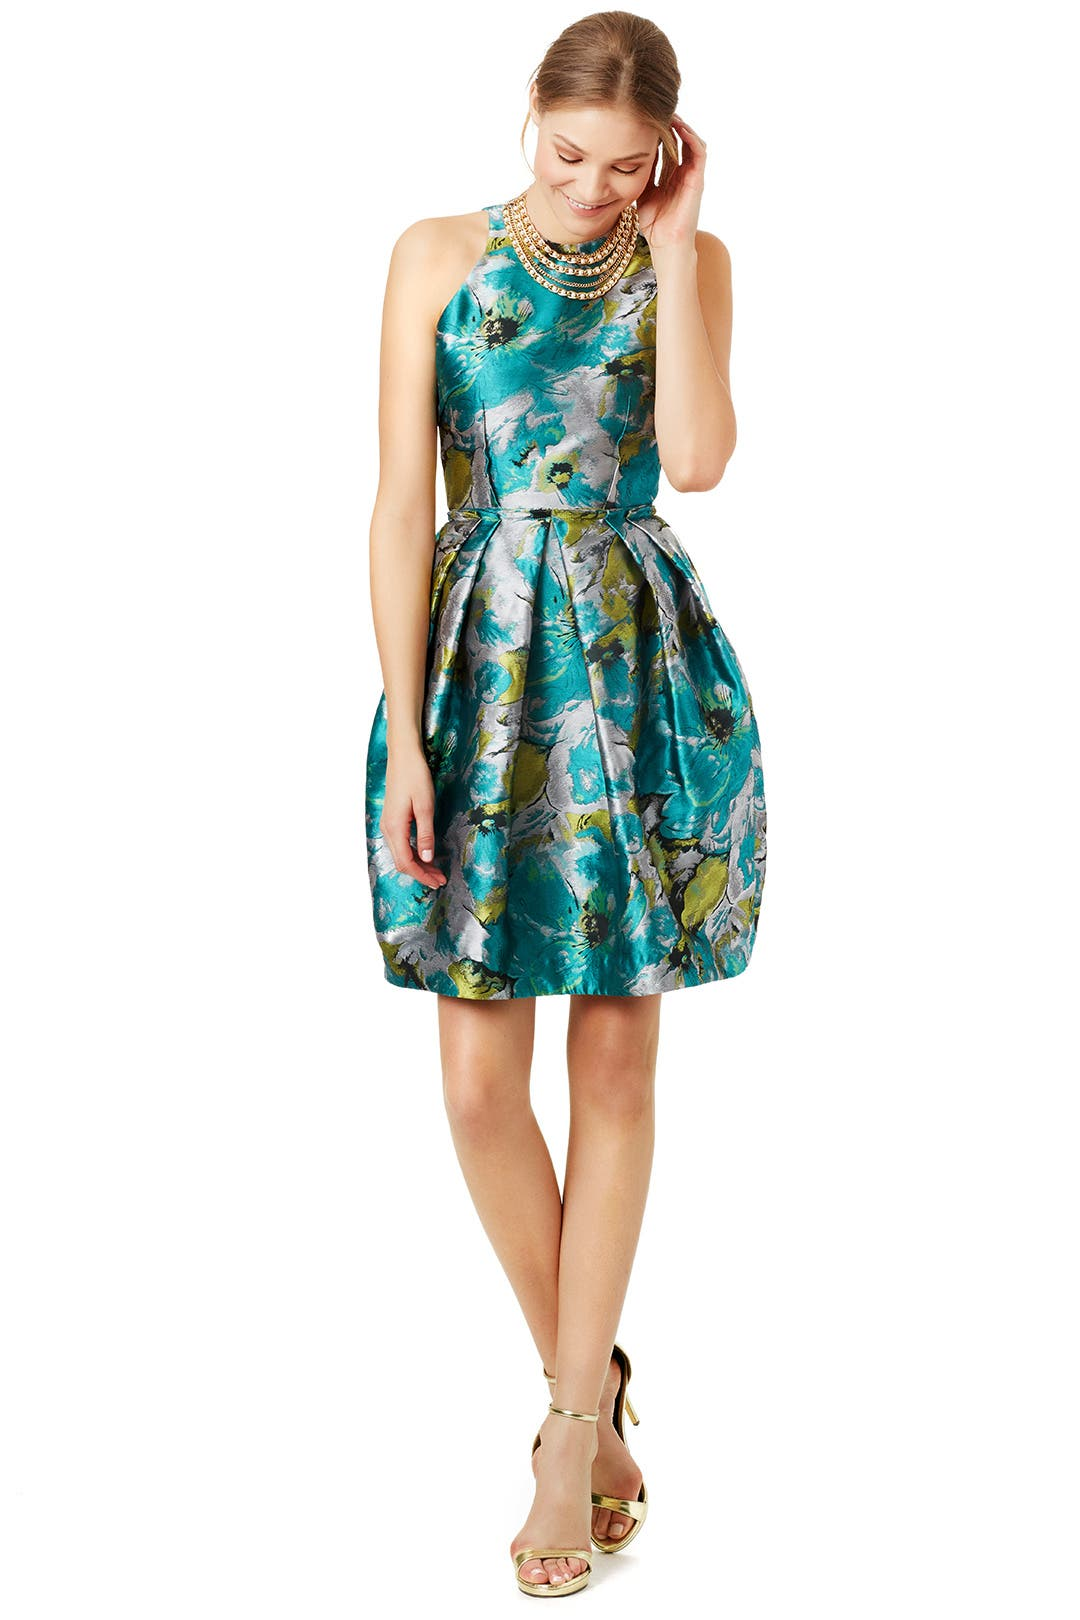 impressionist dress by carmen marc valvo for 60 rent the runway